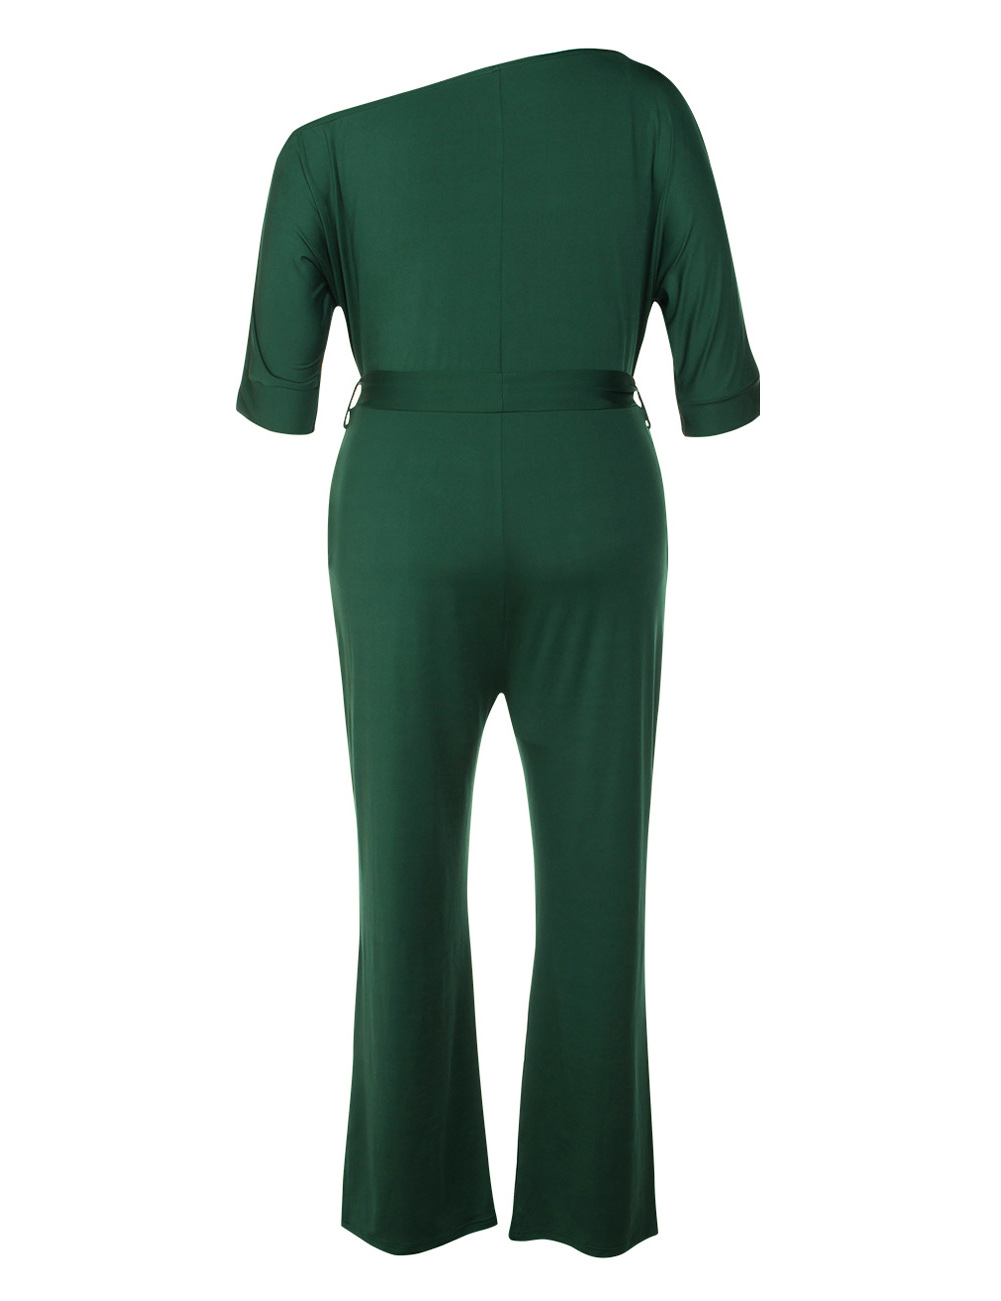 //cdn.affectcloud.com/hexinfashion/upload/imgs/Dress/Jumpsuit_Romper/H180146-GN5/H180146-GN5-201911055dc1383024a1e.jpg